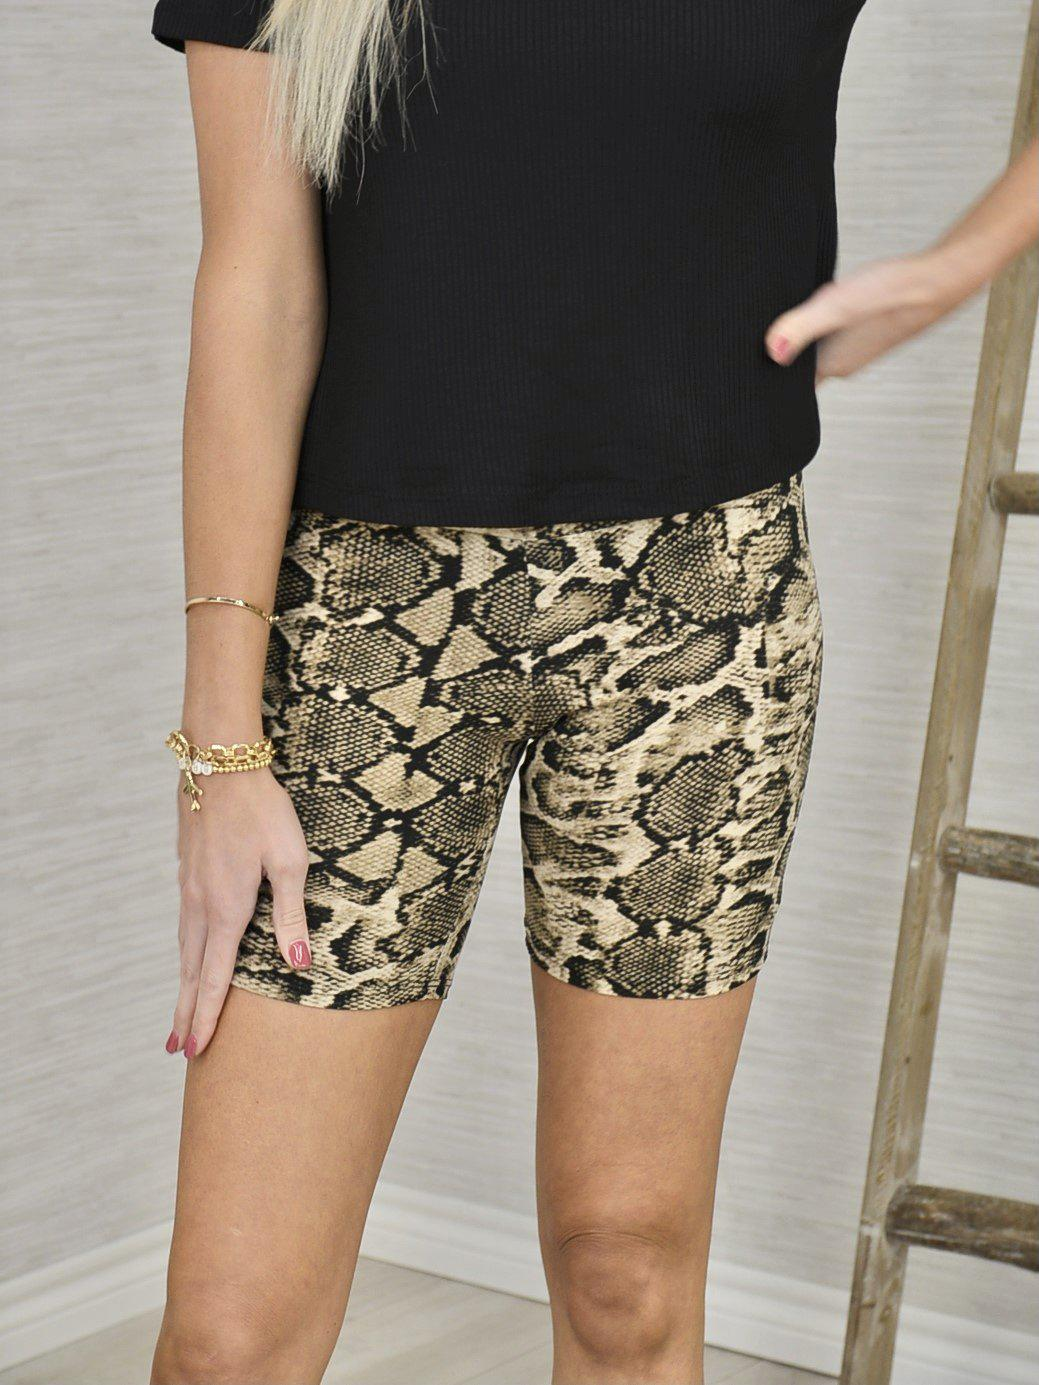 Rider's Glory Shorts-Women's -New Arrivals-Runway Seven